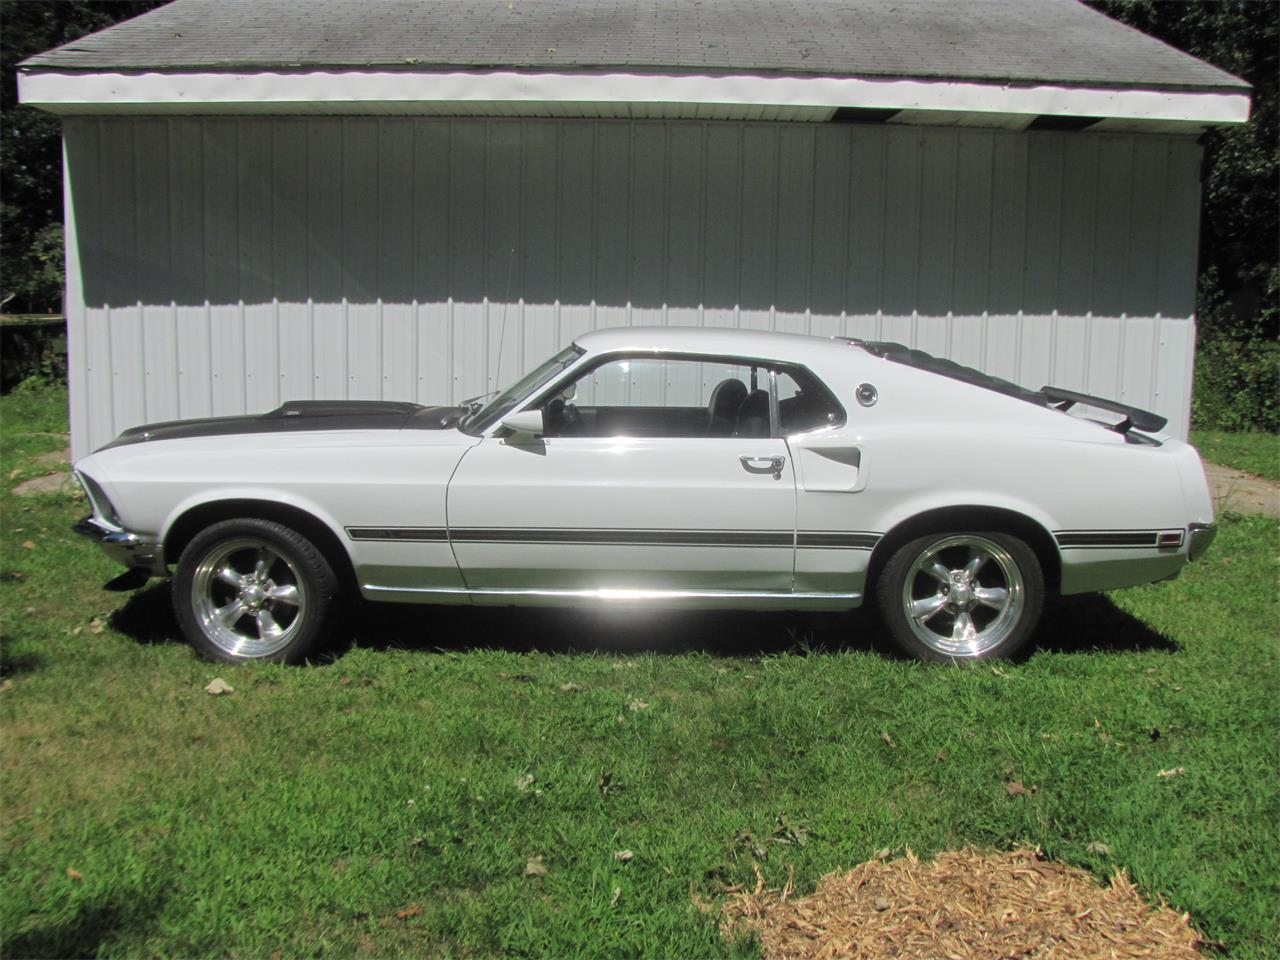 For Sale: 1969 Ford Mustang Mach 1 in Jefferson, Iowa